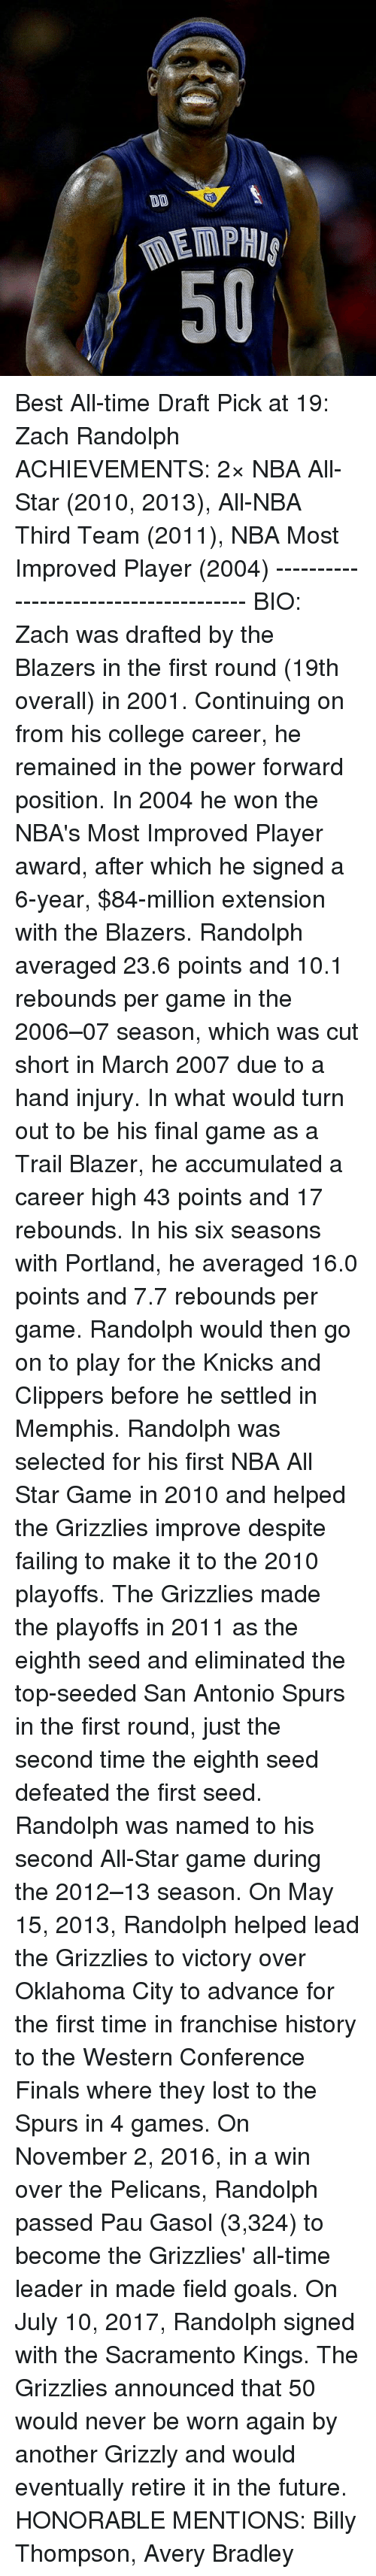 nba all stars: MEMPA  50 Best All-time Draft Pick at 19: Zach Randolph ACHIEVEMENTS: 2× NBA All-Star (2010, 2013), All-NBA Third Team (2011), NBA Most Improved Player (2004) -------------------------------------- BIO: Zach was drafted by the Blazers in the first round (19th overall) in 2001. Continuing on from his college career, he remained in the power forward position. In 2004 he won the NBA's Most Improved Player award, after which he signed a 6-year, $84-million extension with the Blazers. Randolph averaged 23.6 points and 10.1 rebounds per game in the 2006–07 season, which was cut short in March 2007 due to a hand injury. In what would turn out to be his final game as a Trail Blazer, he accumulated a career high 43 points and 17 rebounds. In his six seasons with Portland, he averaged 16.0 points and 7.7 rebounds per game. Randolph would then go on to play for the Knicks and Clippers before he settled in Memphis. Randolph was selected for his first NBA All Star Game in 2010 and helped the Grizzlies improve despite failing to make it to the 2010 playoffs. The Grizzlies made the playoffs in 2011 as the eighth seed and eliminated the top-seeded San Antonio Spurs in the first round, just the second time the eighth seed defeated the first seed. Randolph was named to his second All-Star game during the 2012–13 season. On May 15, 2013, Randolph helped lead the Grizzlies to victory over Oklahoma City to advance for the first time in franchise history to the Western Conference Finals where they lost to the Spurs in 4 games. On November 2, 2016, in a win over the Pelicans, Randolph passed Pau Gasol (3,324) to become the Grizzlies' all-time leader in made field goals. On July 10, 2017, Randolph signed with the Sacramento Kings. The Grizzlies announced that 50 would never be worn again by another Grizzly and would eventually retire it in the future. HONORABLE MENTIONS: Billy Thompson, Avery Bradley